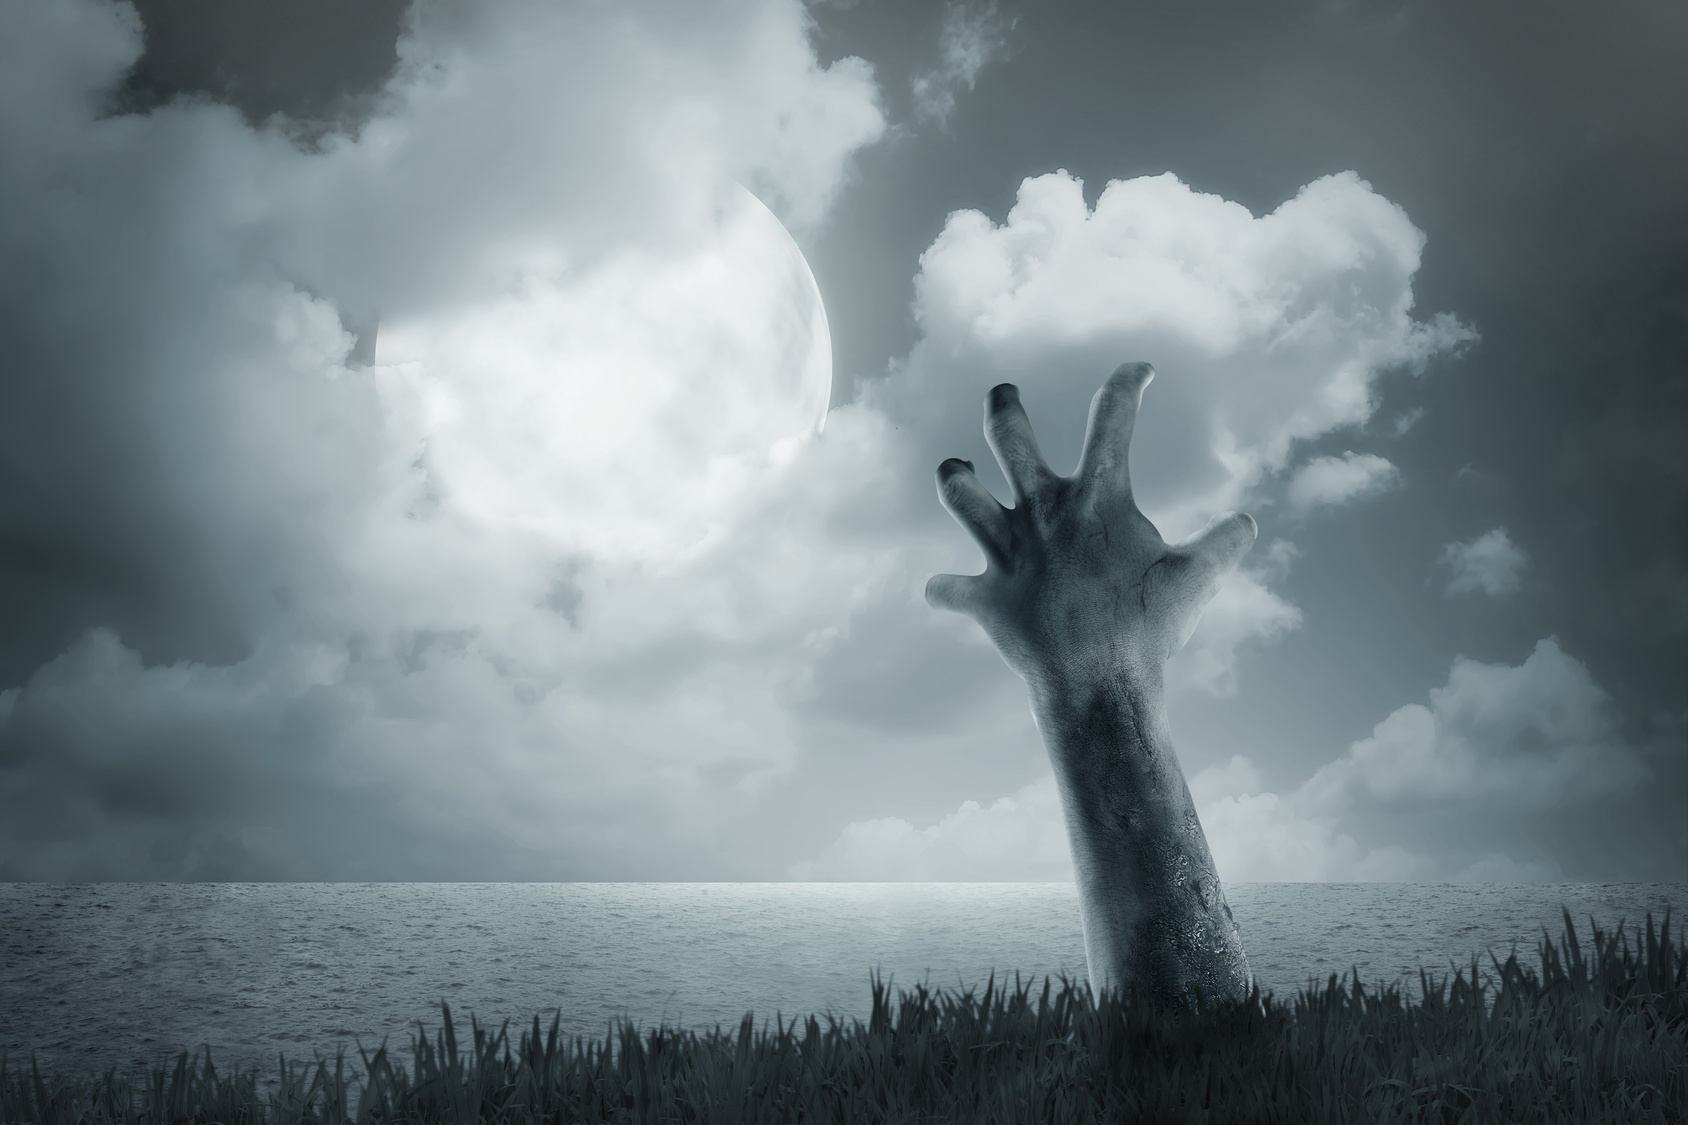 Zombie hand come out from ground in a spooky marsh